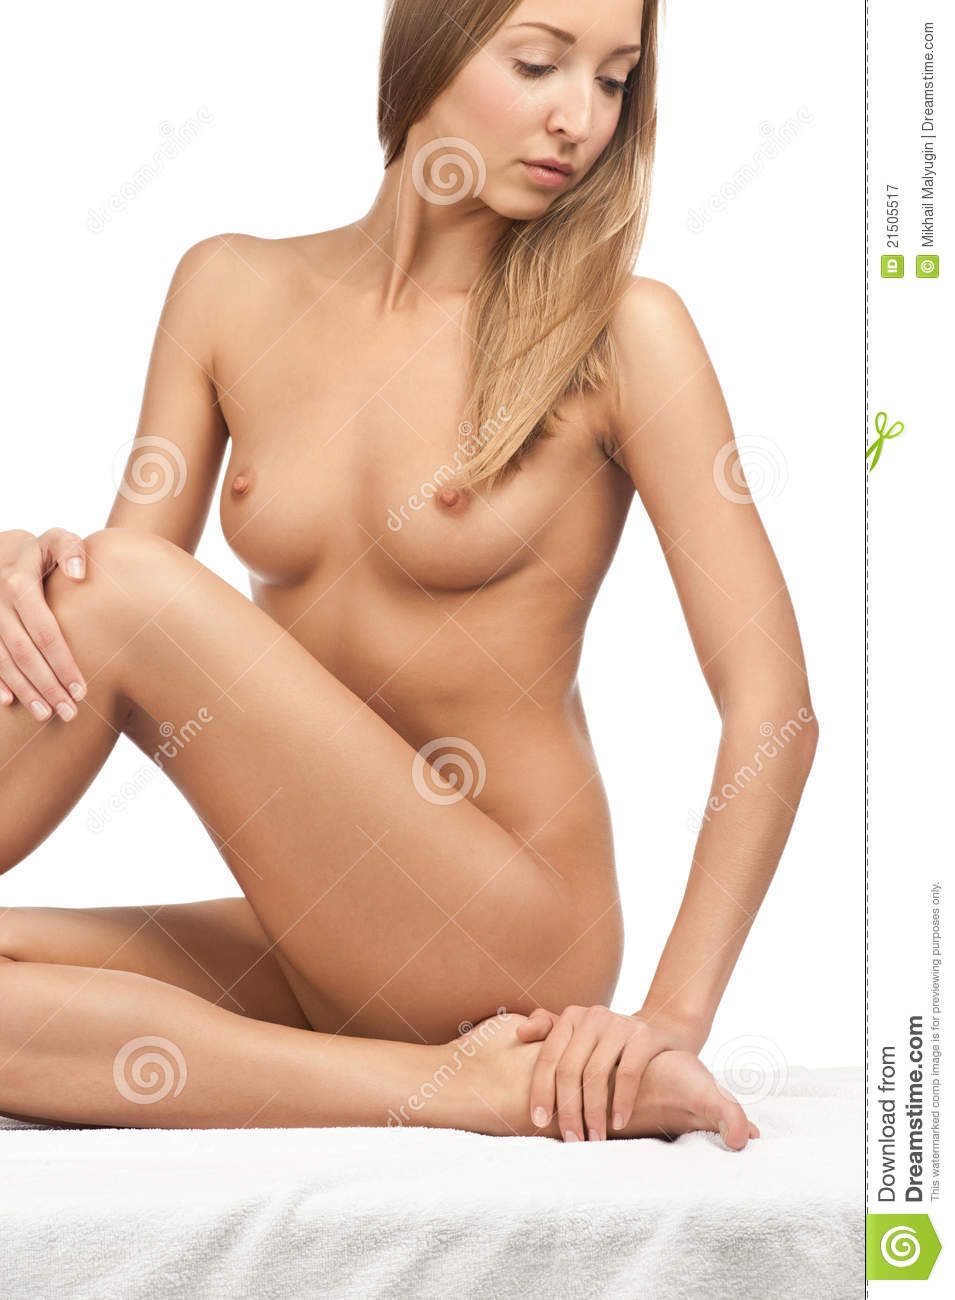 Naked Woman With Slim Body Sitting On White Sheet Isolated